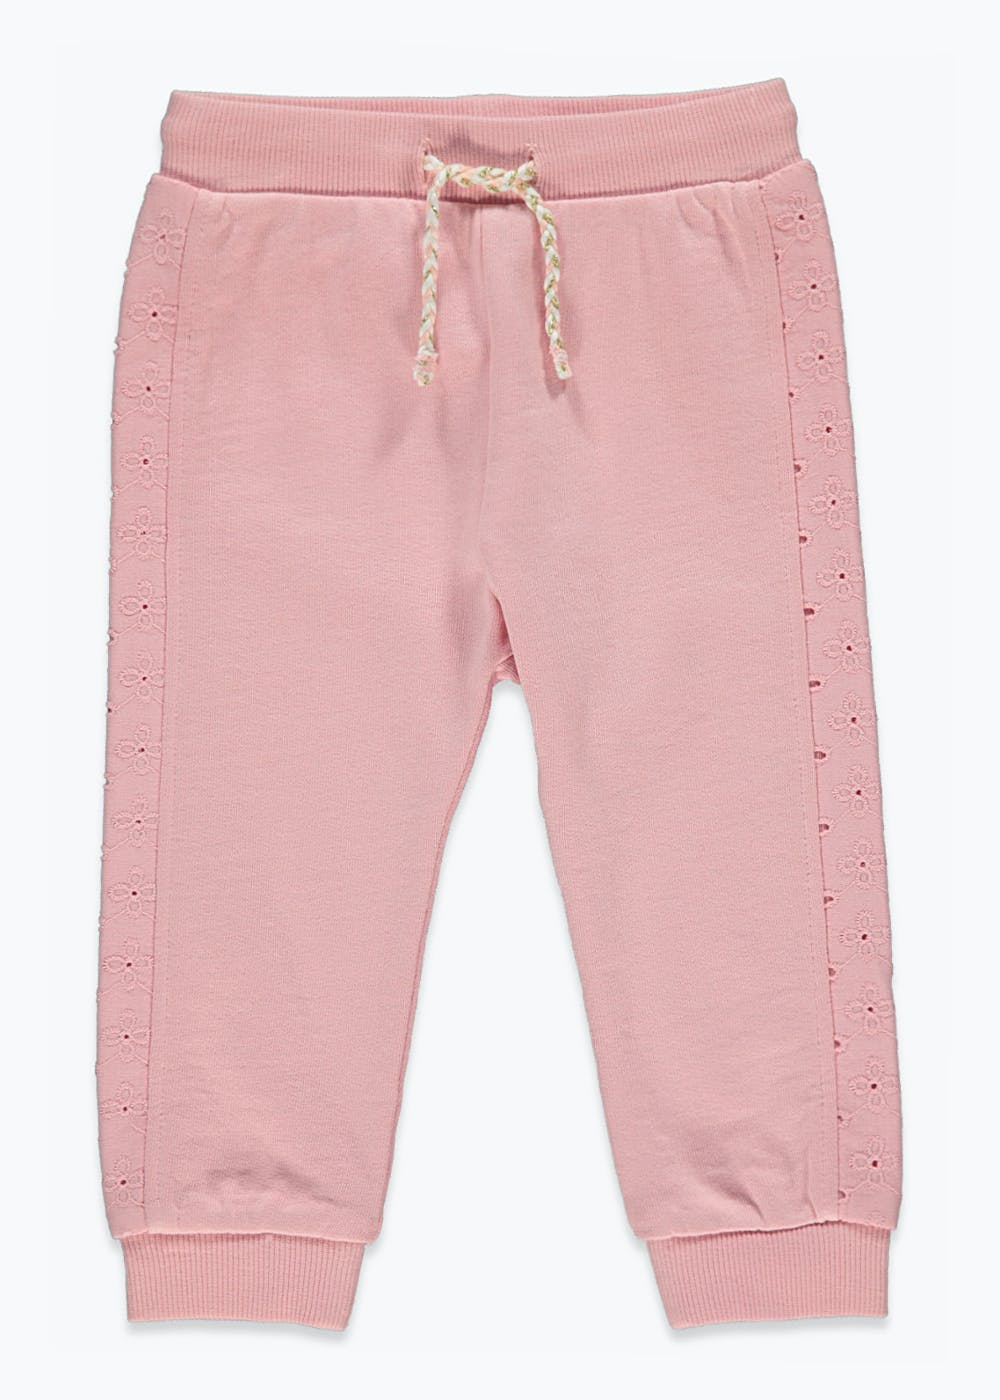 Girls Broderie Joggers (9mths-6yrs) – Pink